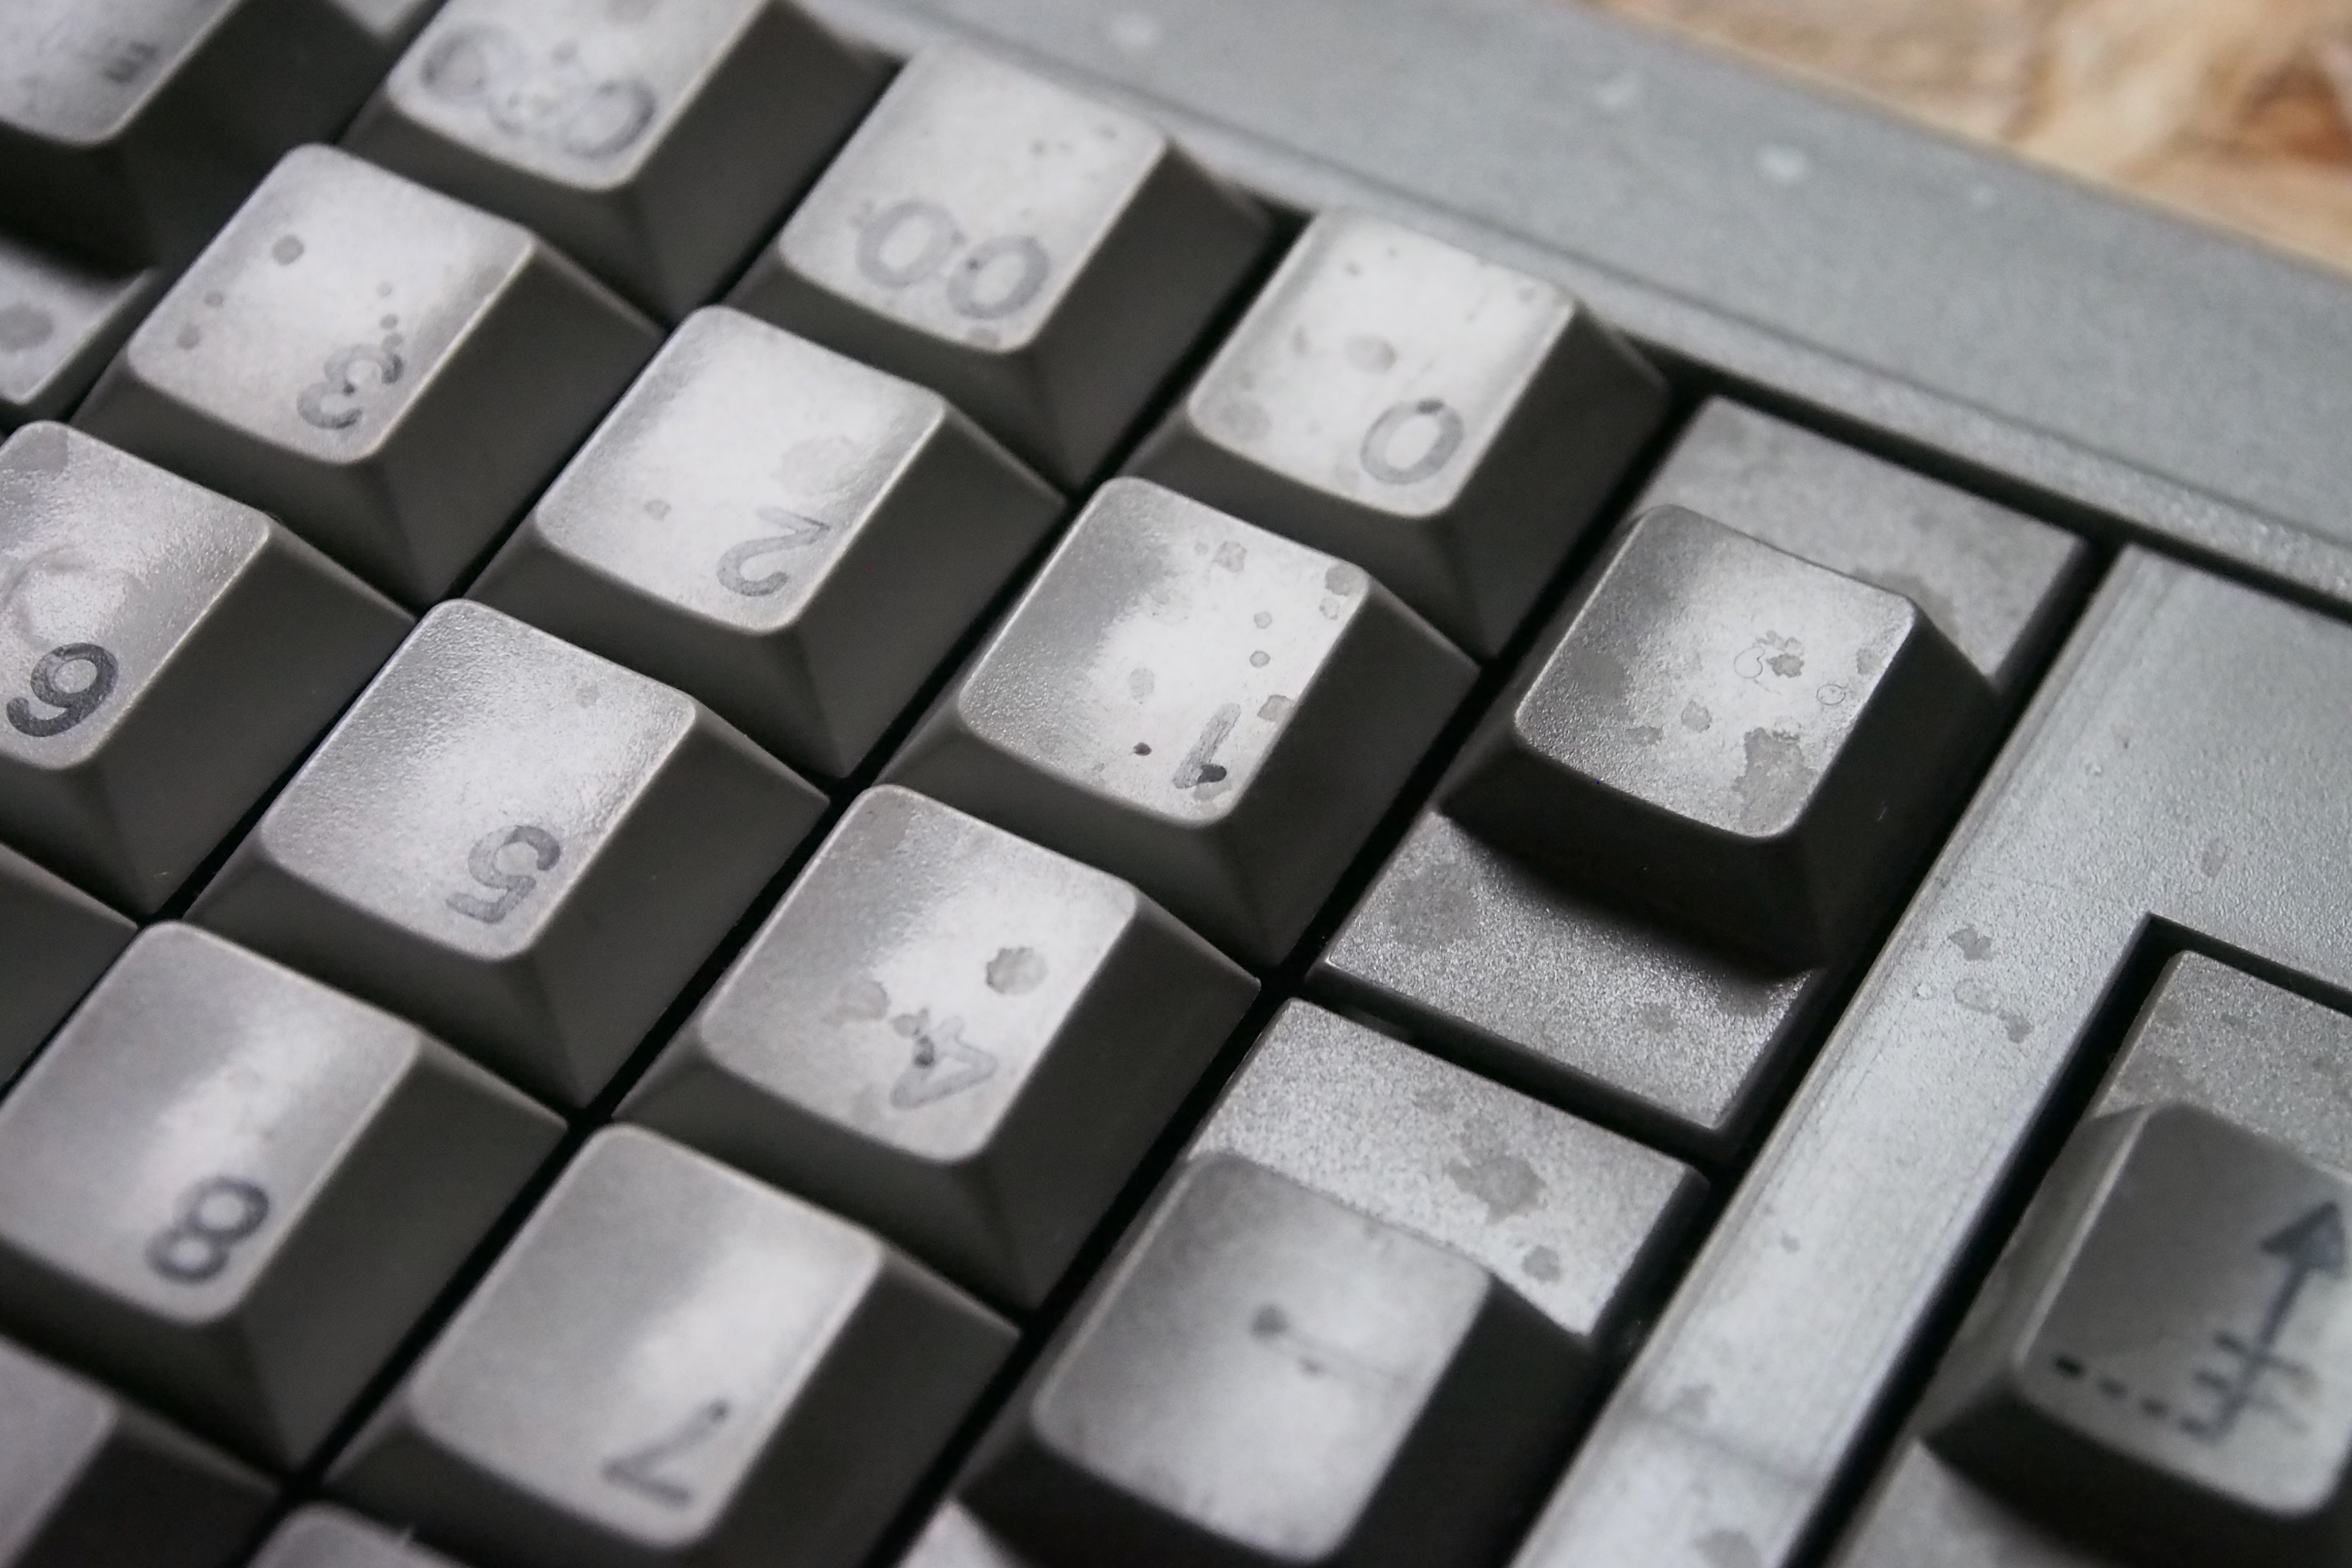 Unfortunately, the keyboard was coated in something nasty, which I can't seem to get off